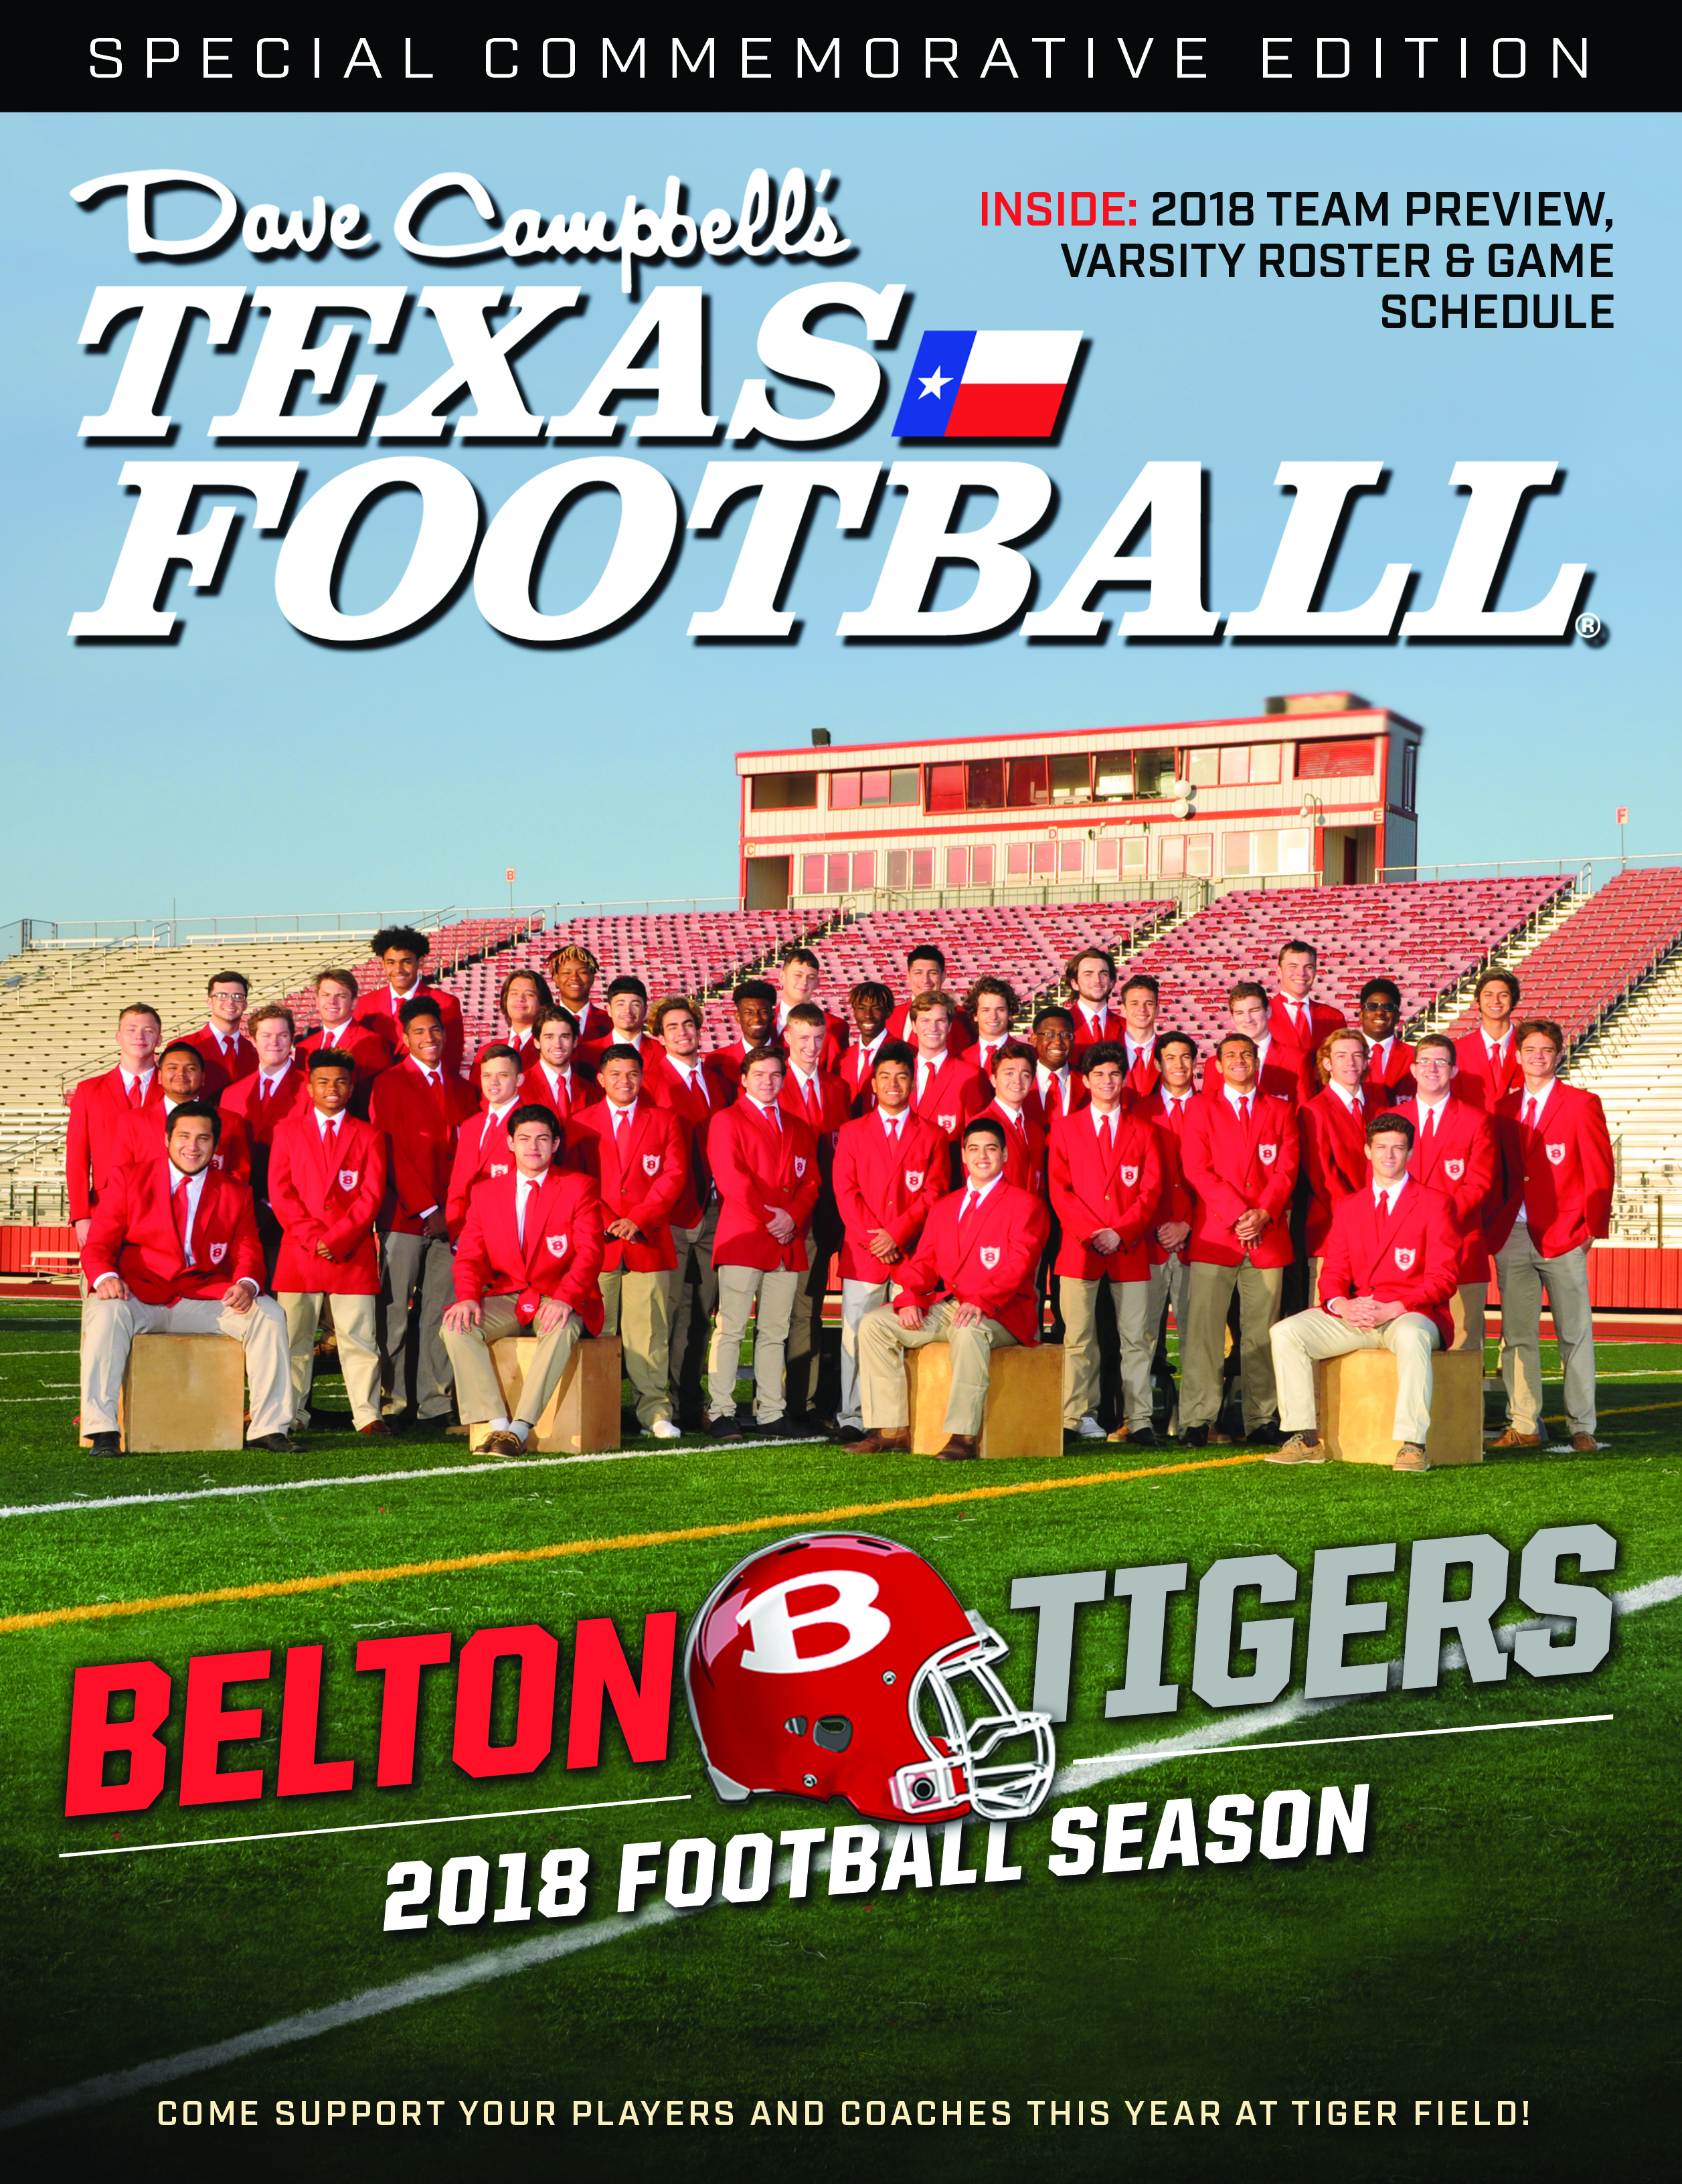 Dave Campbell Texas Football Magazine – Belton Edition